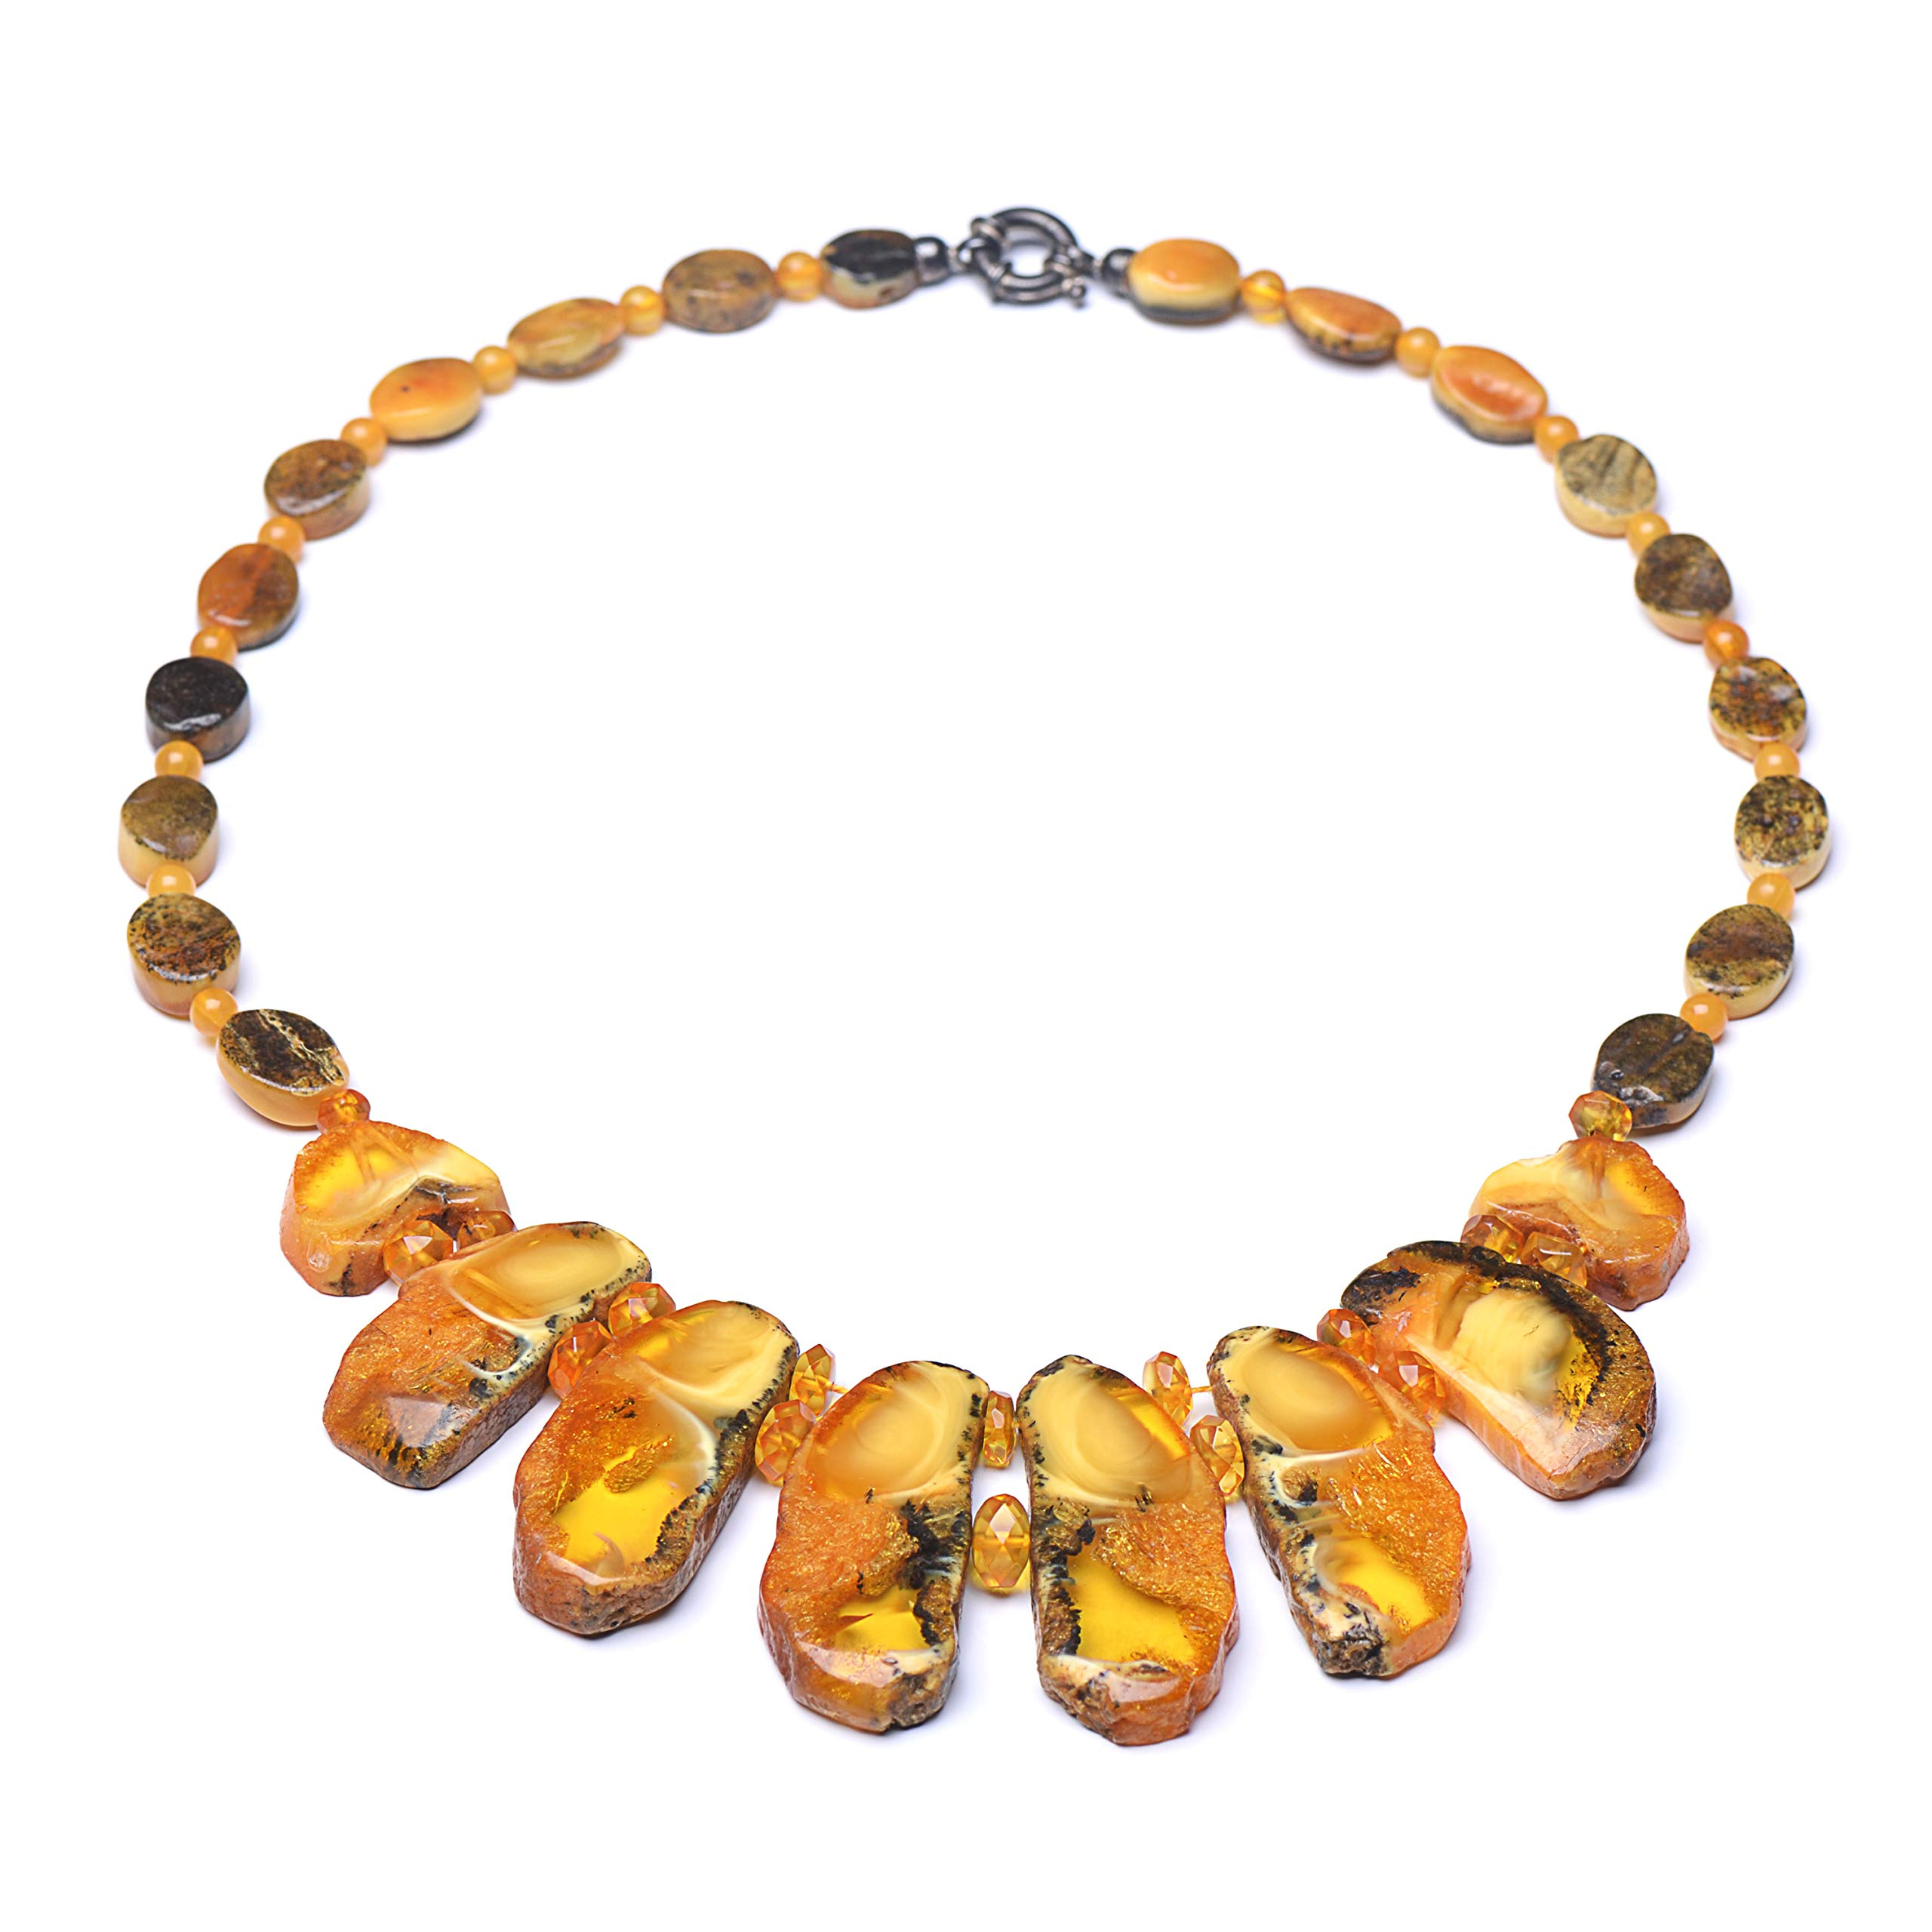 Vintage Amber Necklace - Exclusive Amber Necklace - Unique Baltic Amber Necklace for Woman - Certified Necklace by Genuine Amber